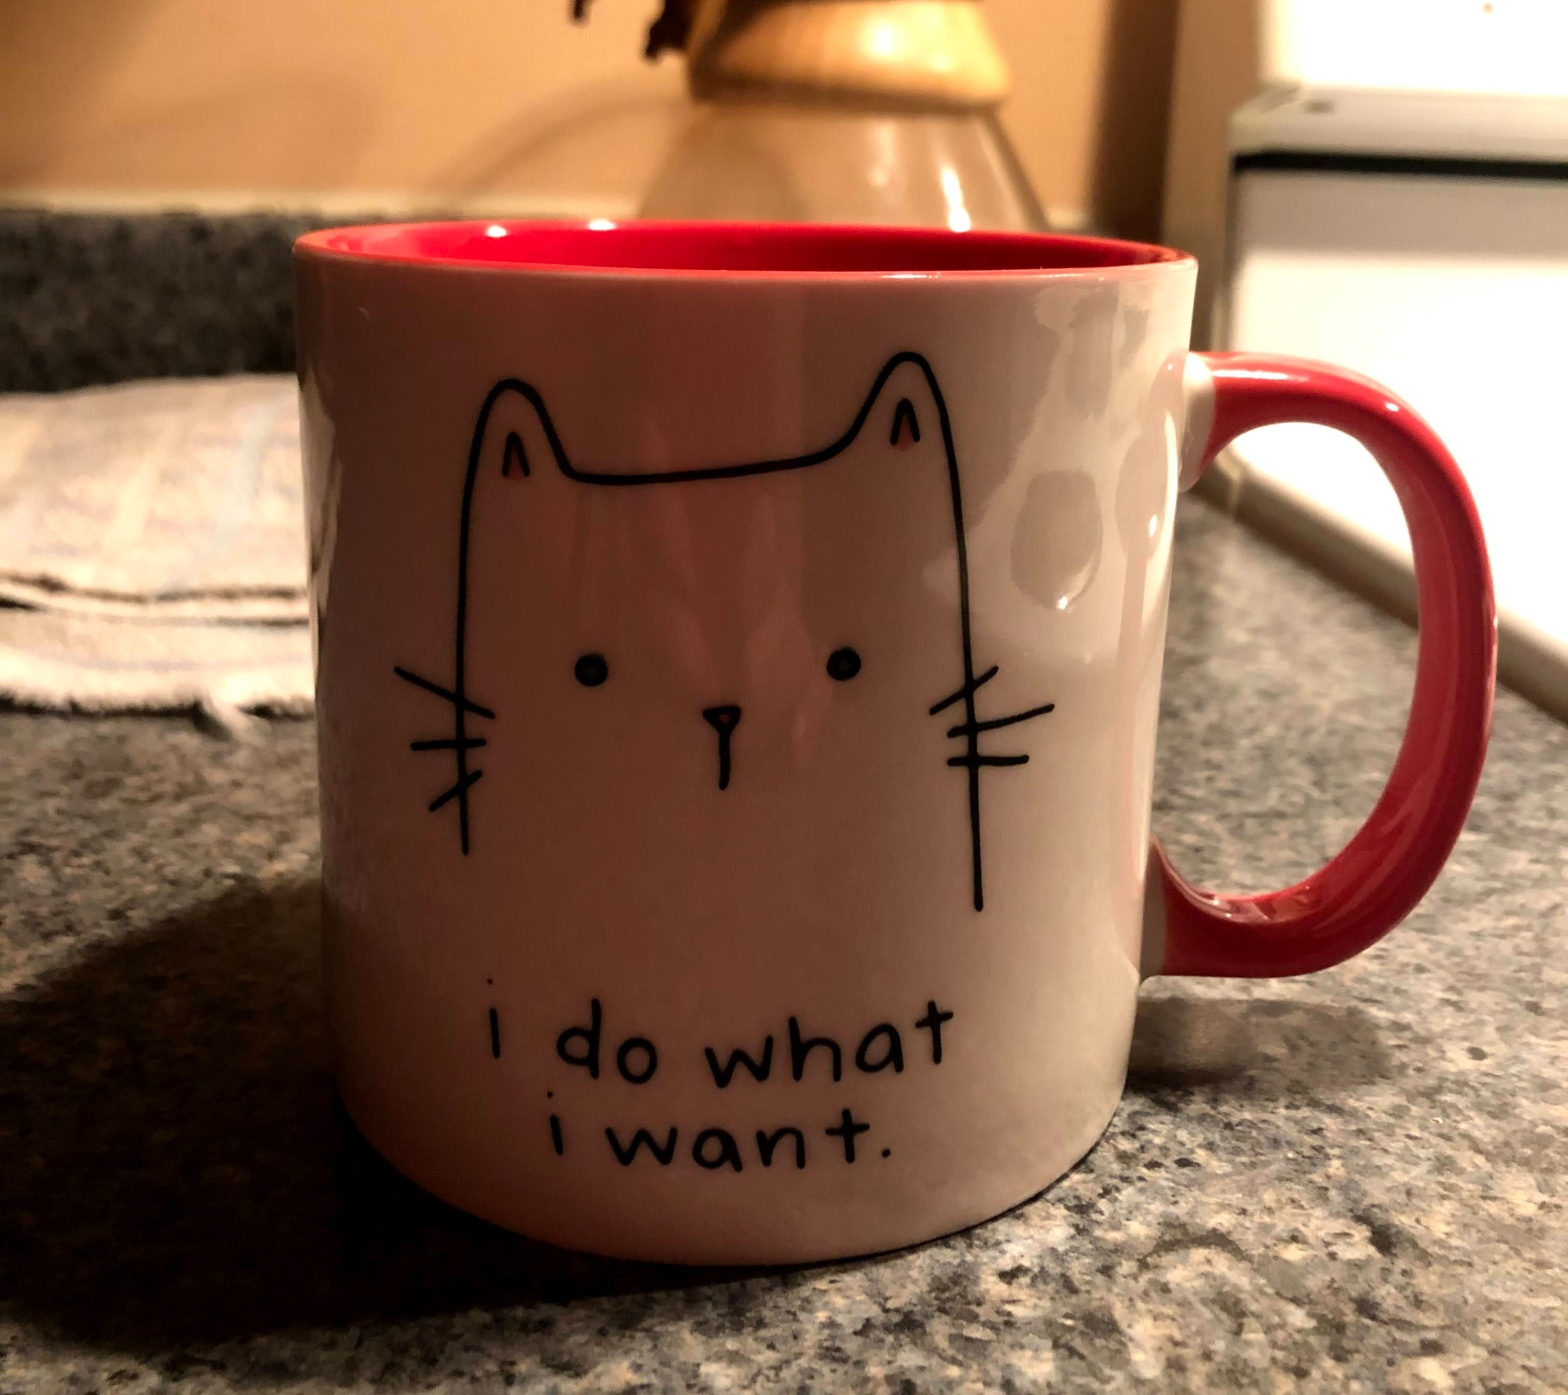 """A cup with a cat face that says """"i do what i want"""""""